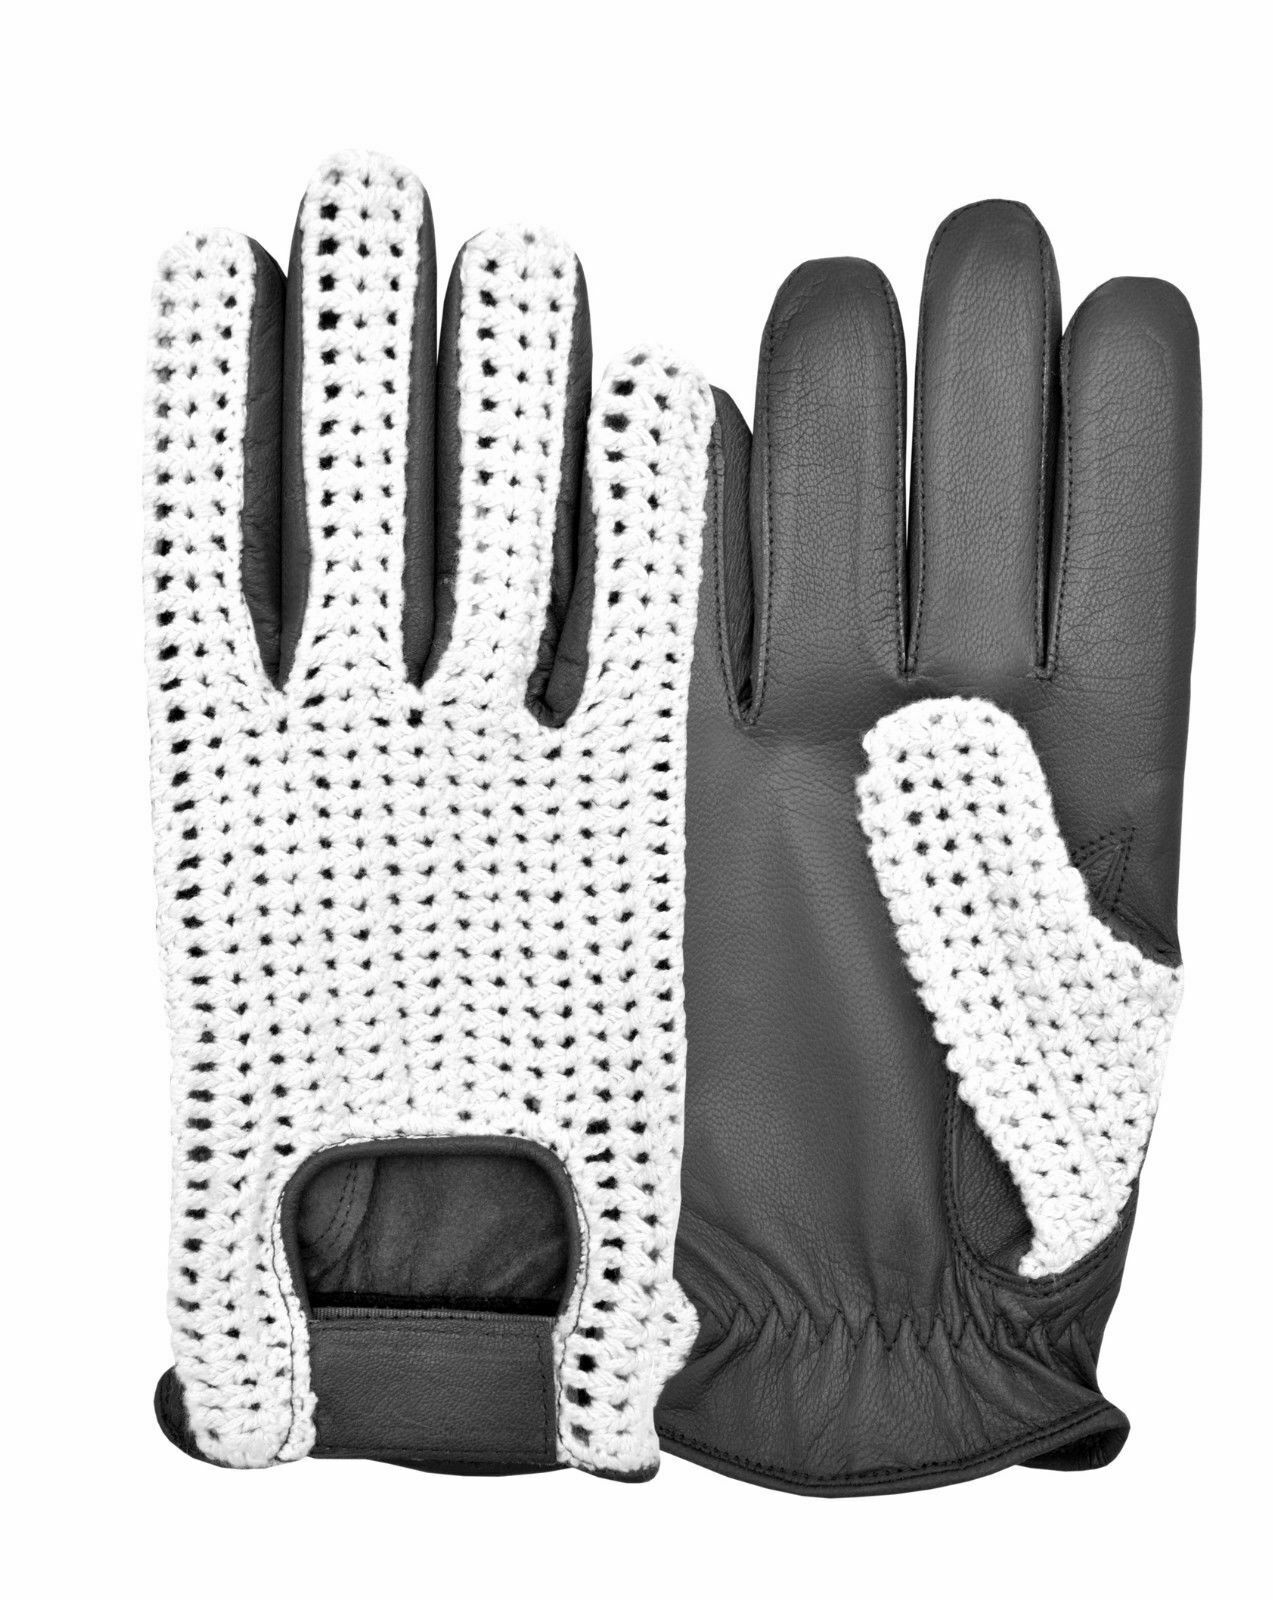 Retro Driving Gloves Crochet High Quality Leather Strap Fasten limo chauffeur